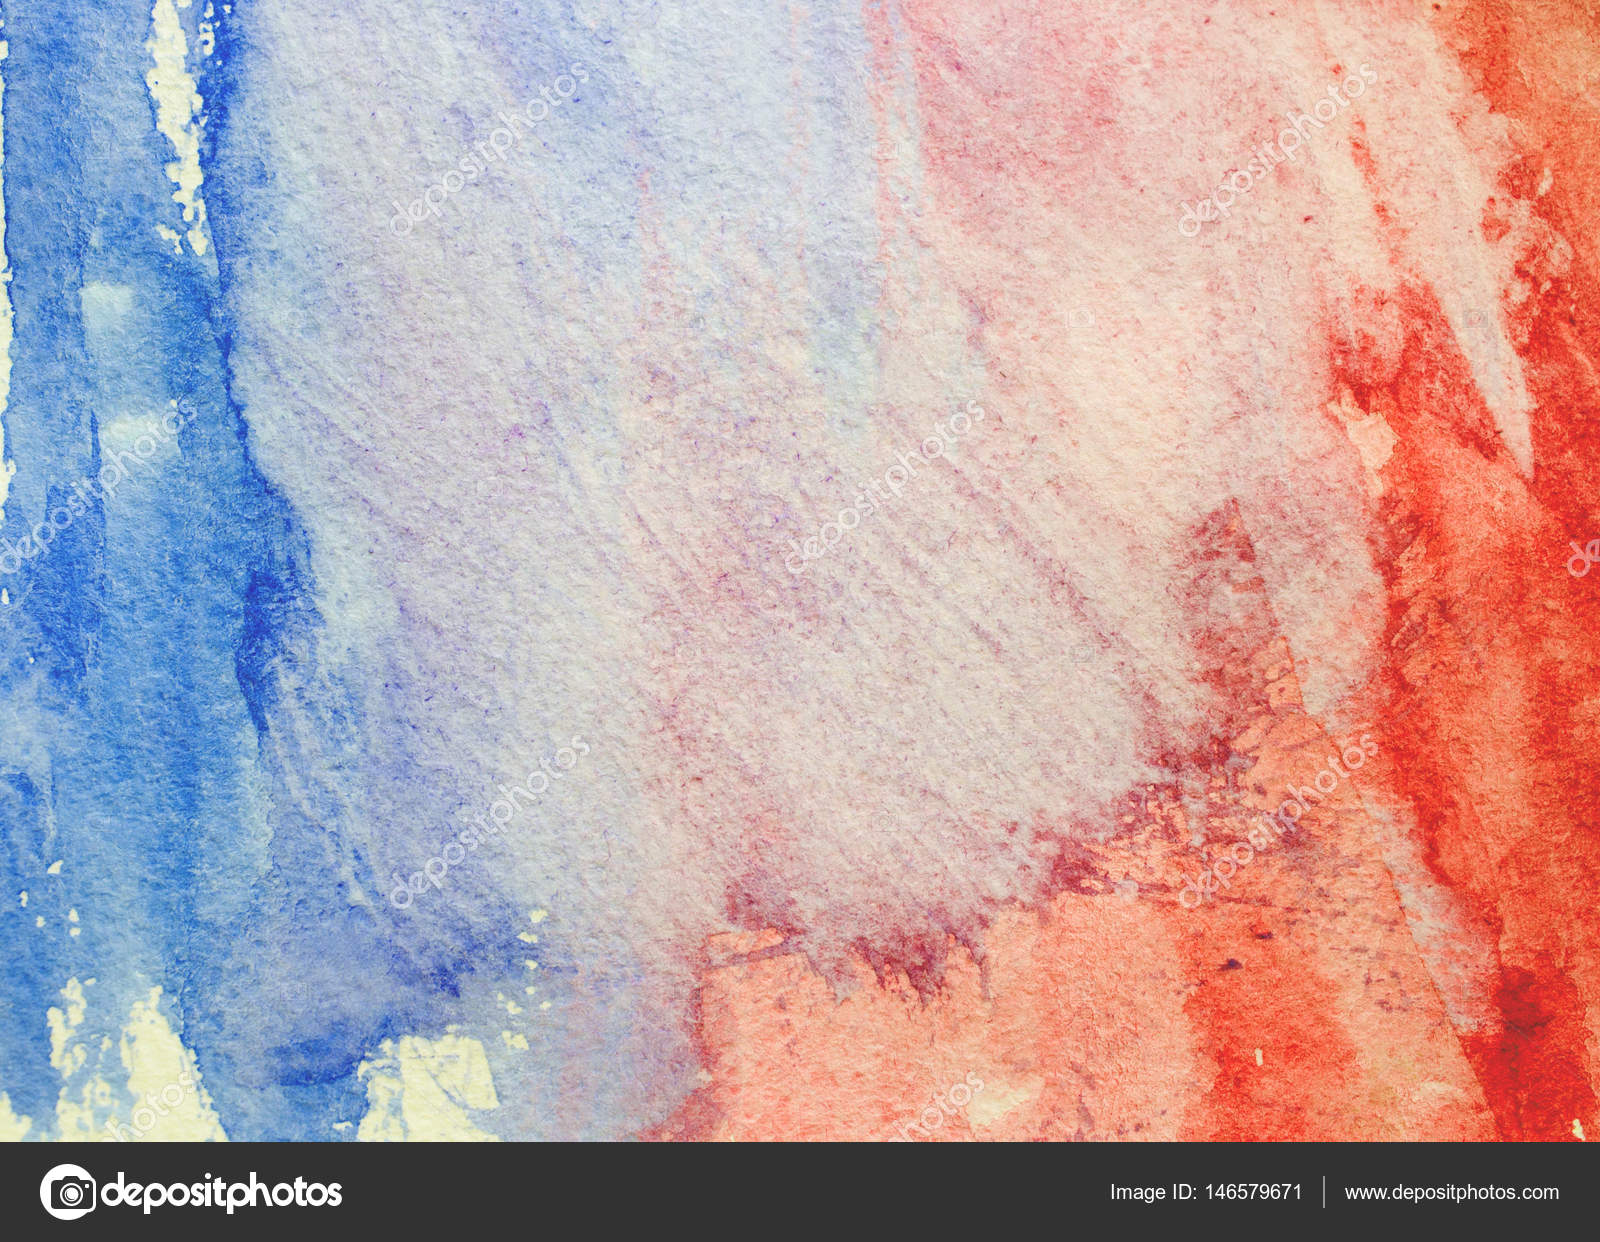 abstract watercolor background stock photo c somen 146579671 https depositphotos com 146579671 stock photo abstract watercolor background html